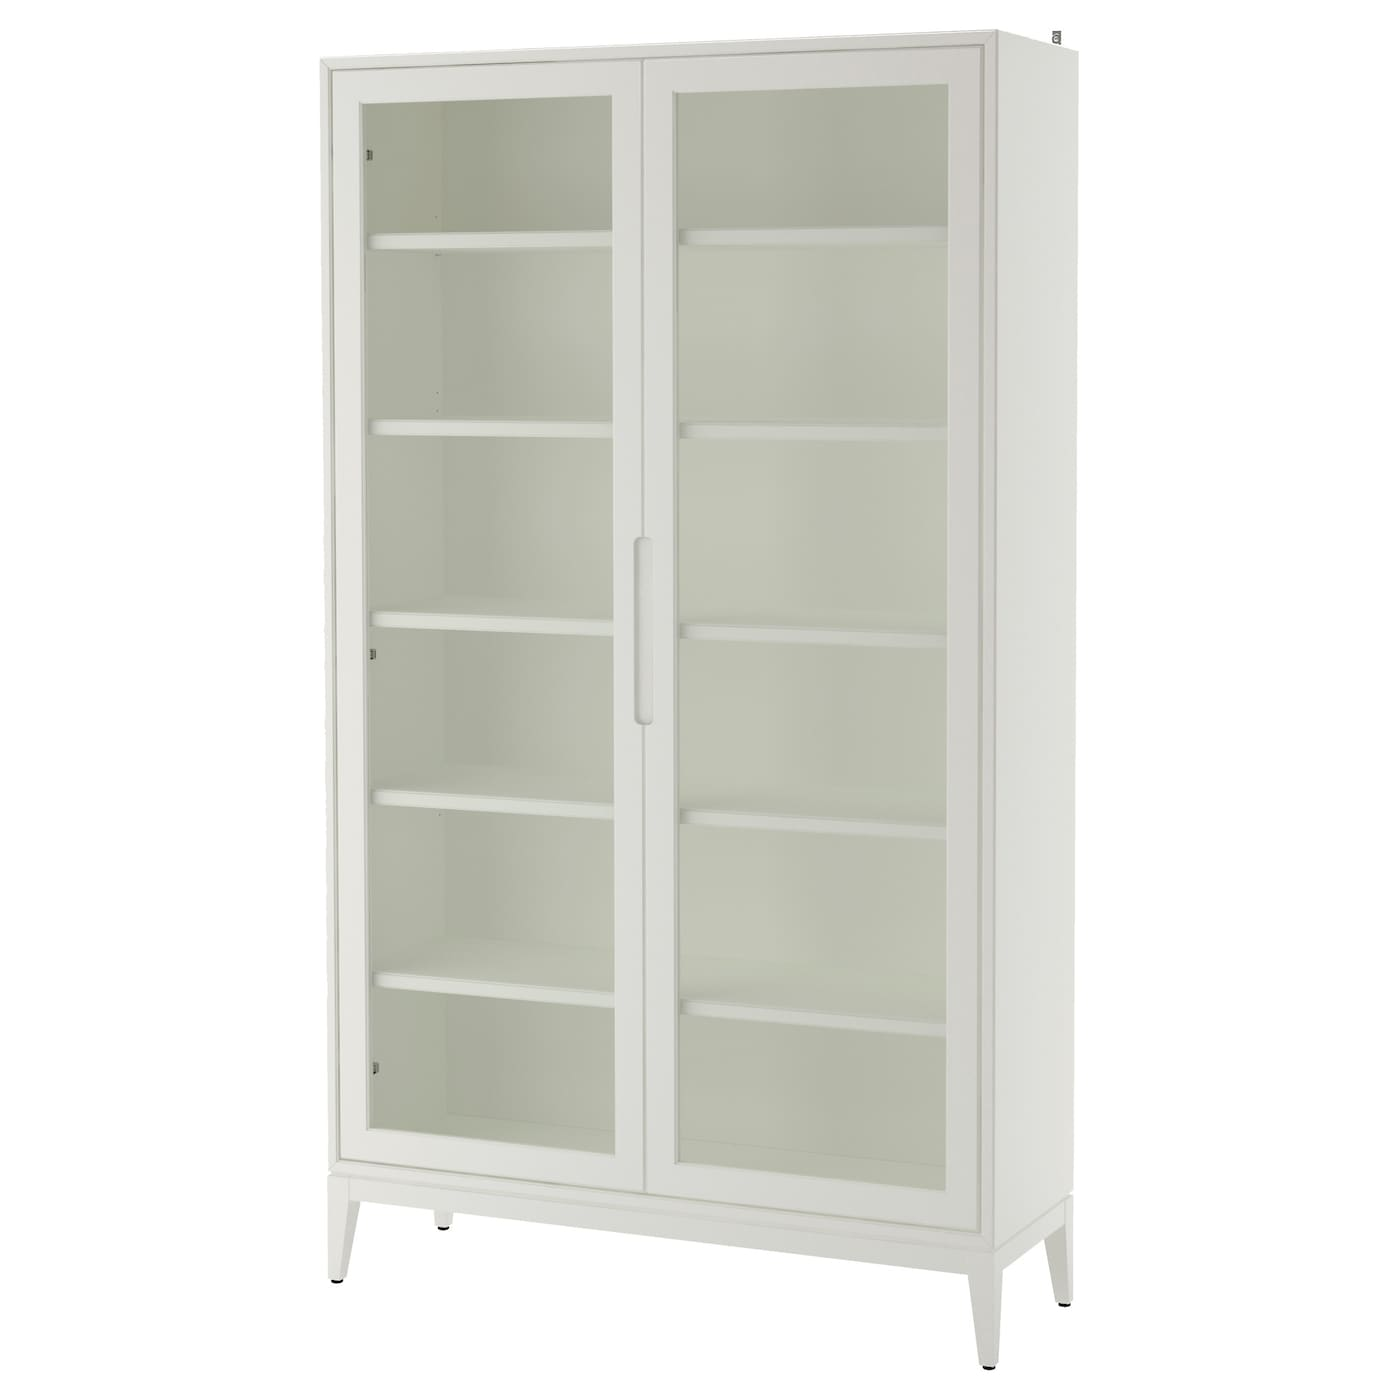 Display cabinets glass display cabinets ikea - Ikea glass cabinets ...